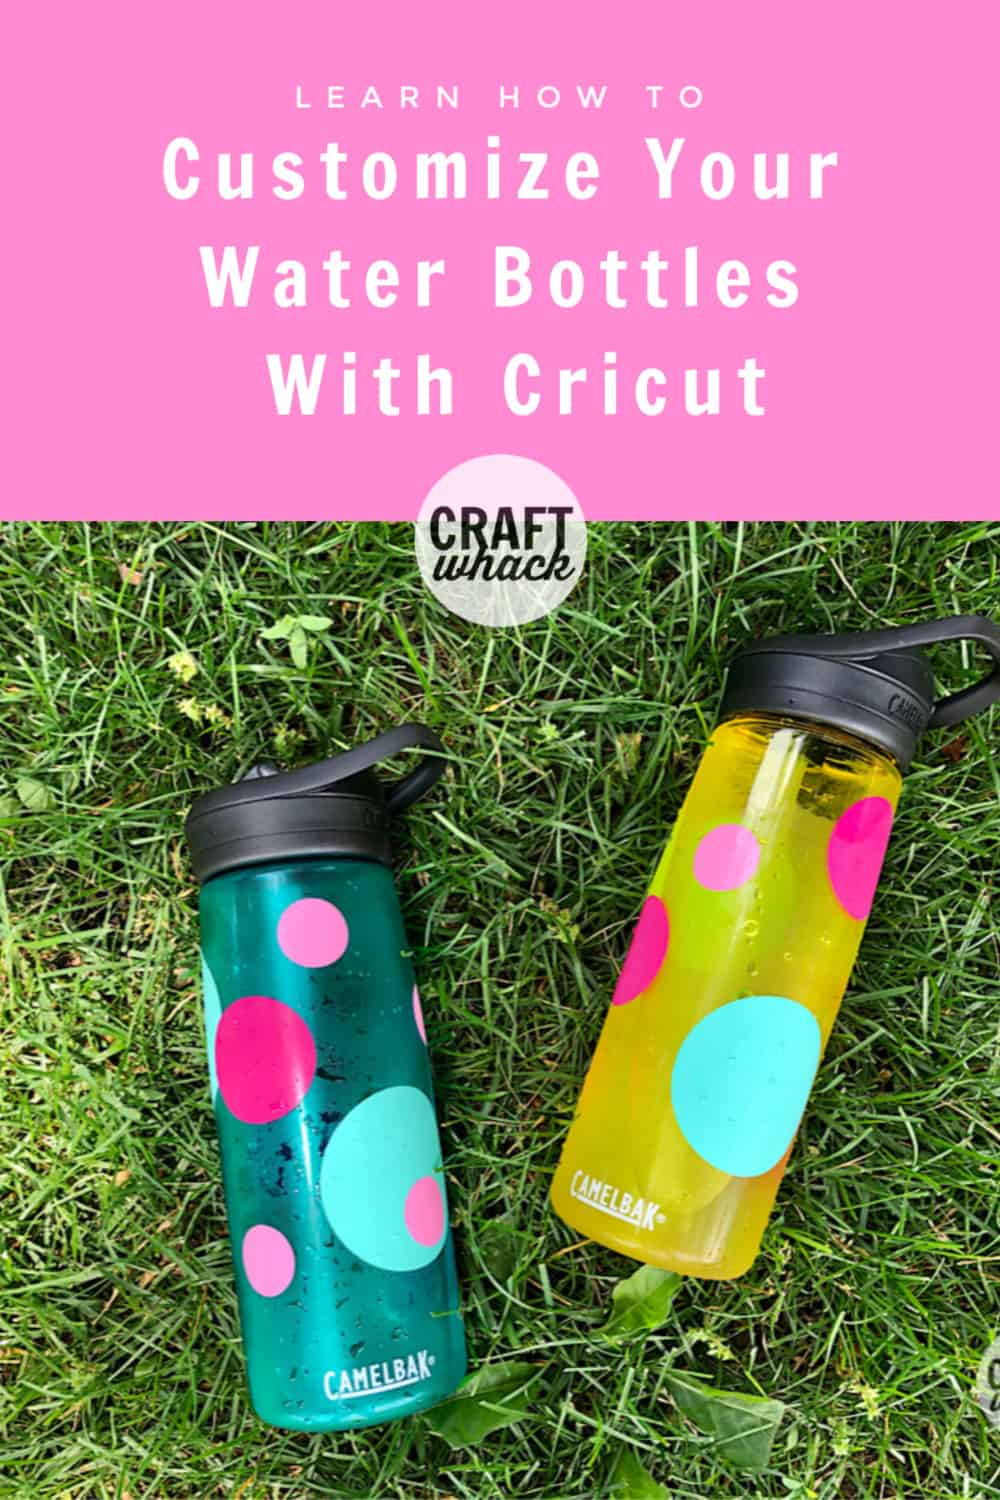 Customized dot water bottles with Cricut Maker